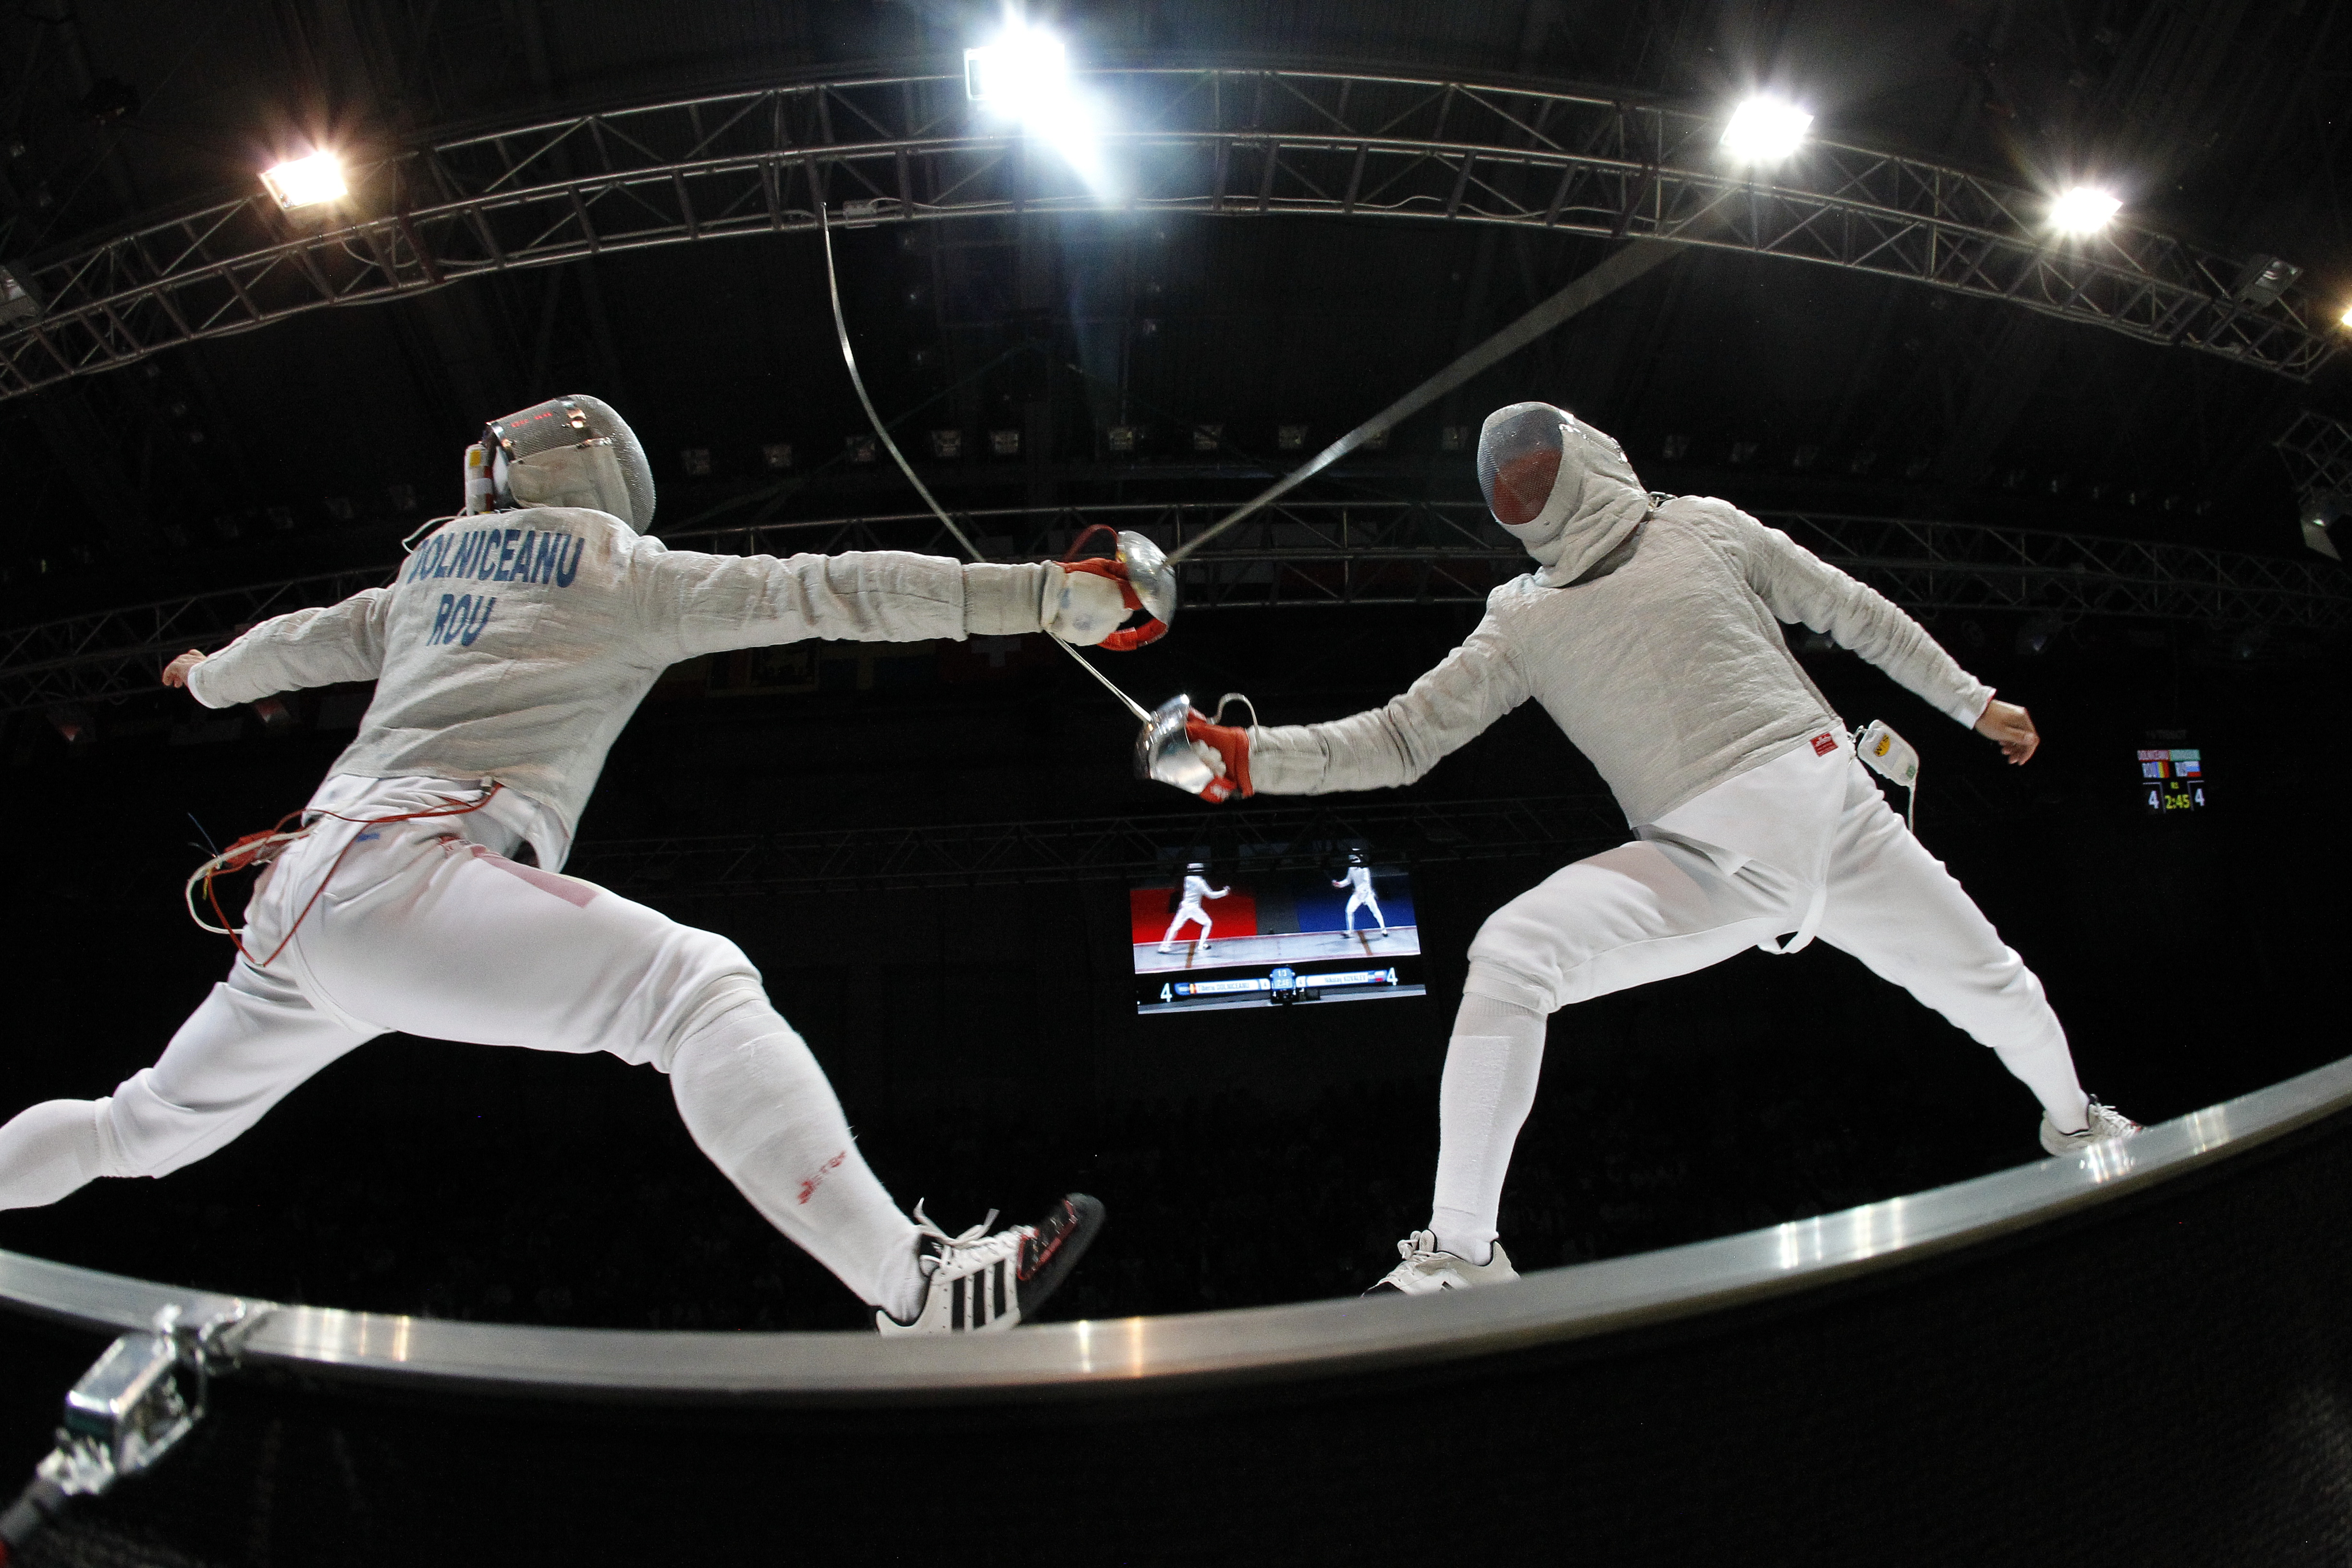 Absolute Fencing Gear® New York Grand Prix Welcomes the